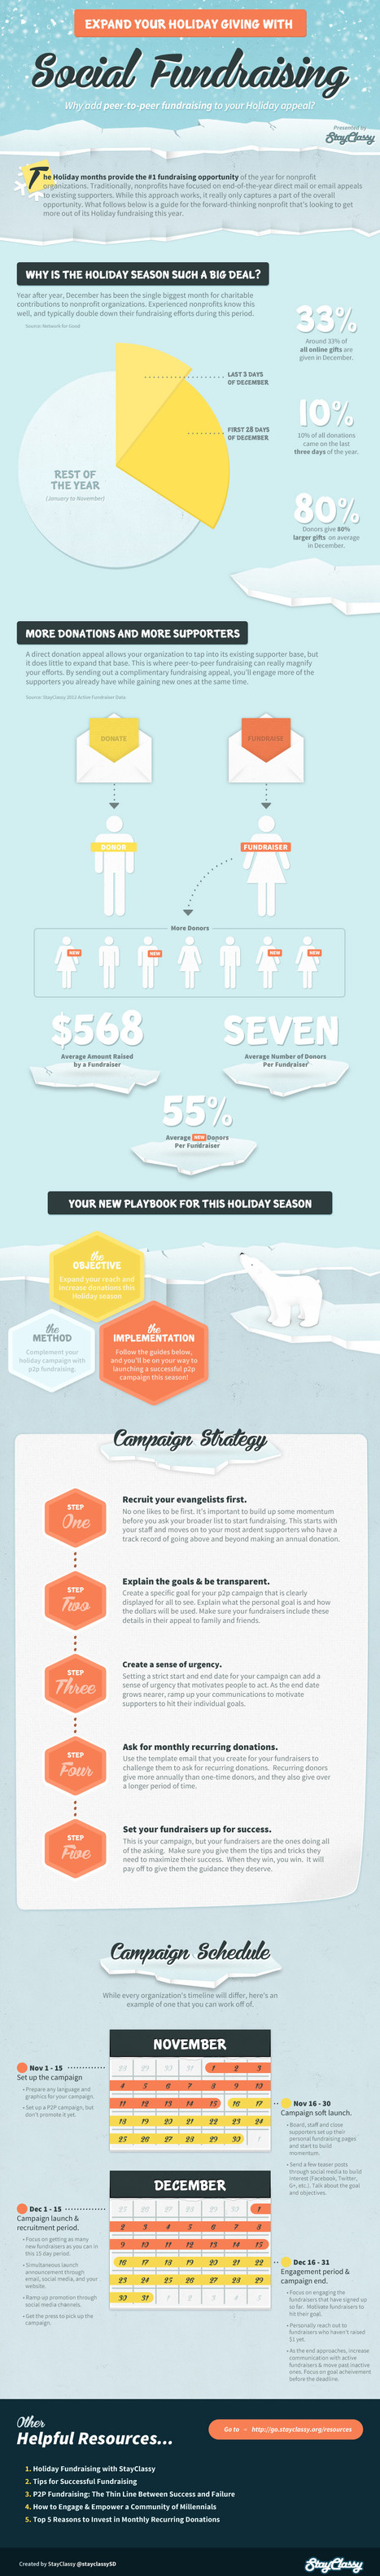 Fundraising playbook for this holiday season INFOGRAPHIC | Startup your self | Scoop.it